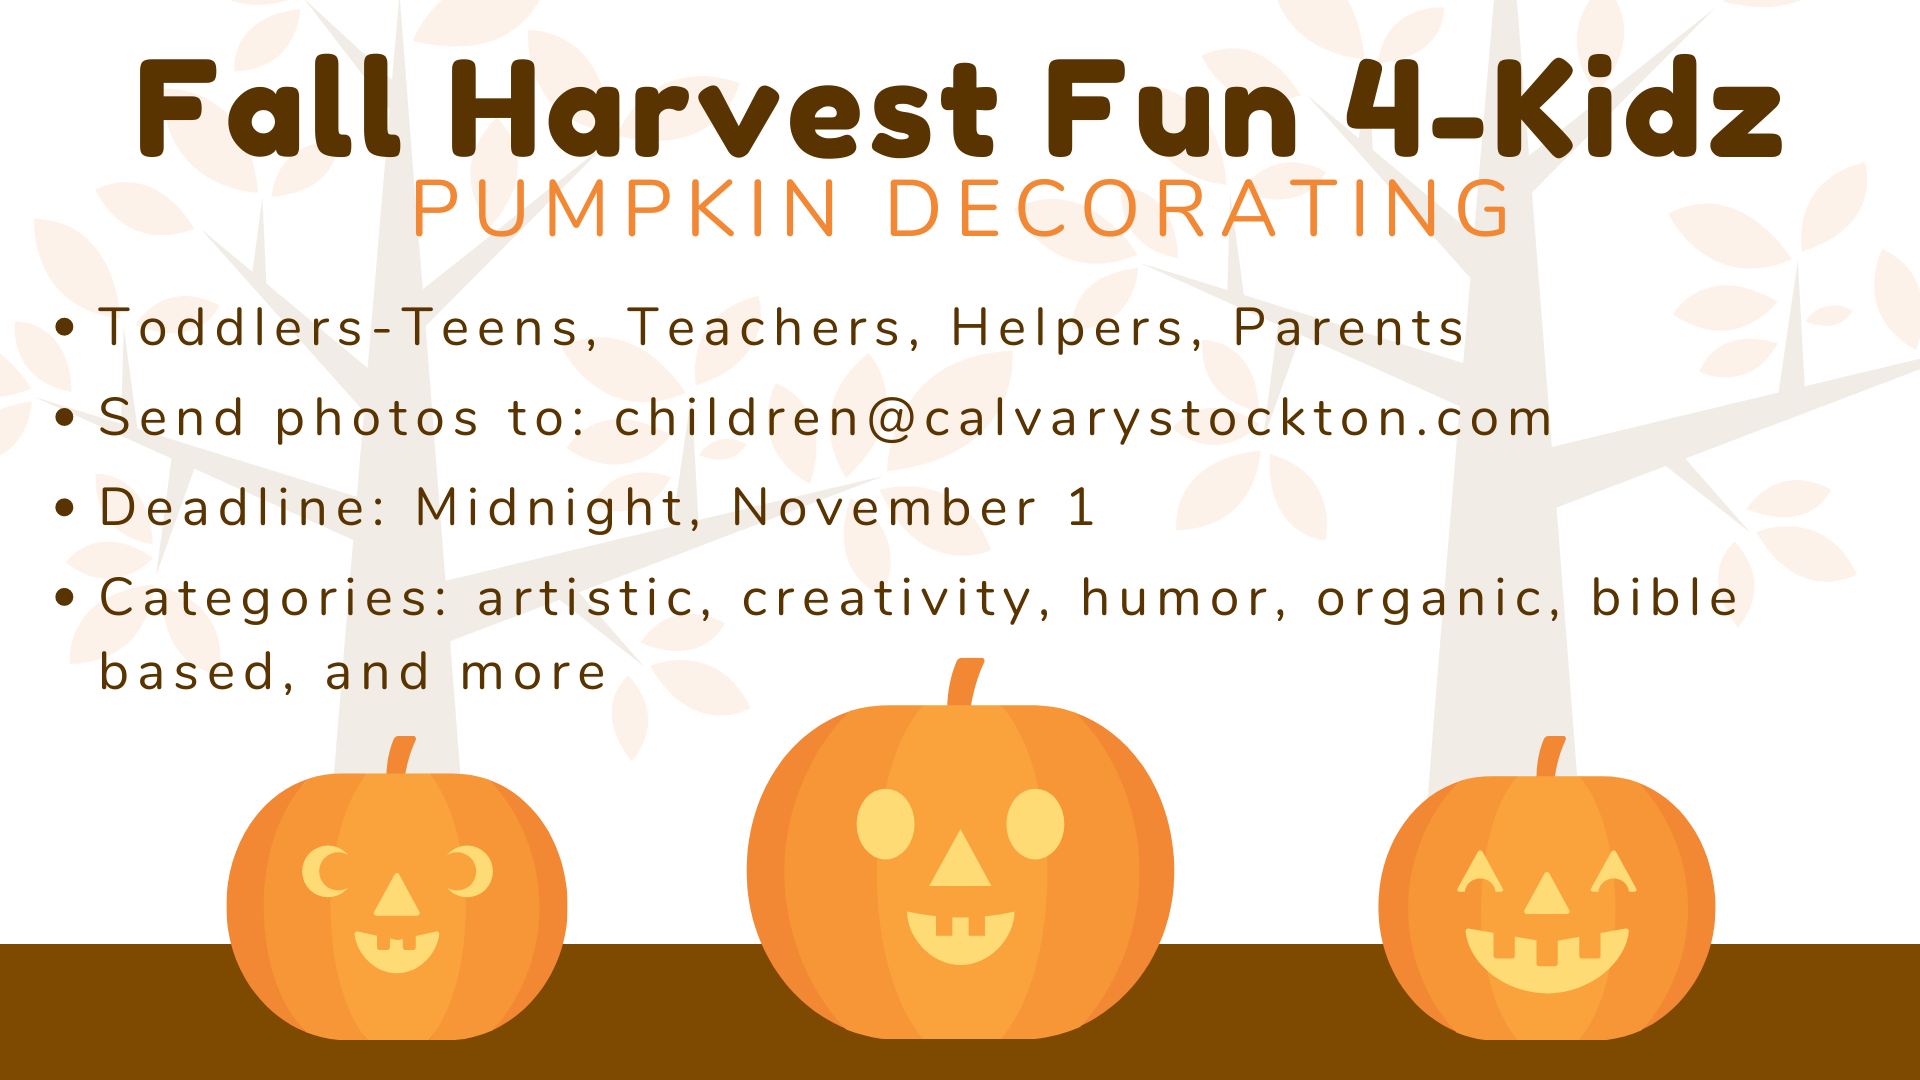 Fall Harvest Fun 4-Kidz (1)